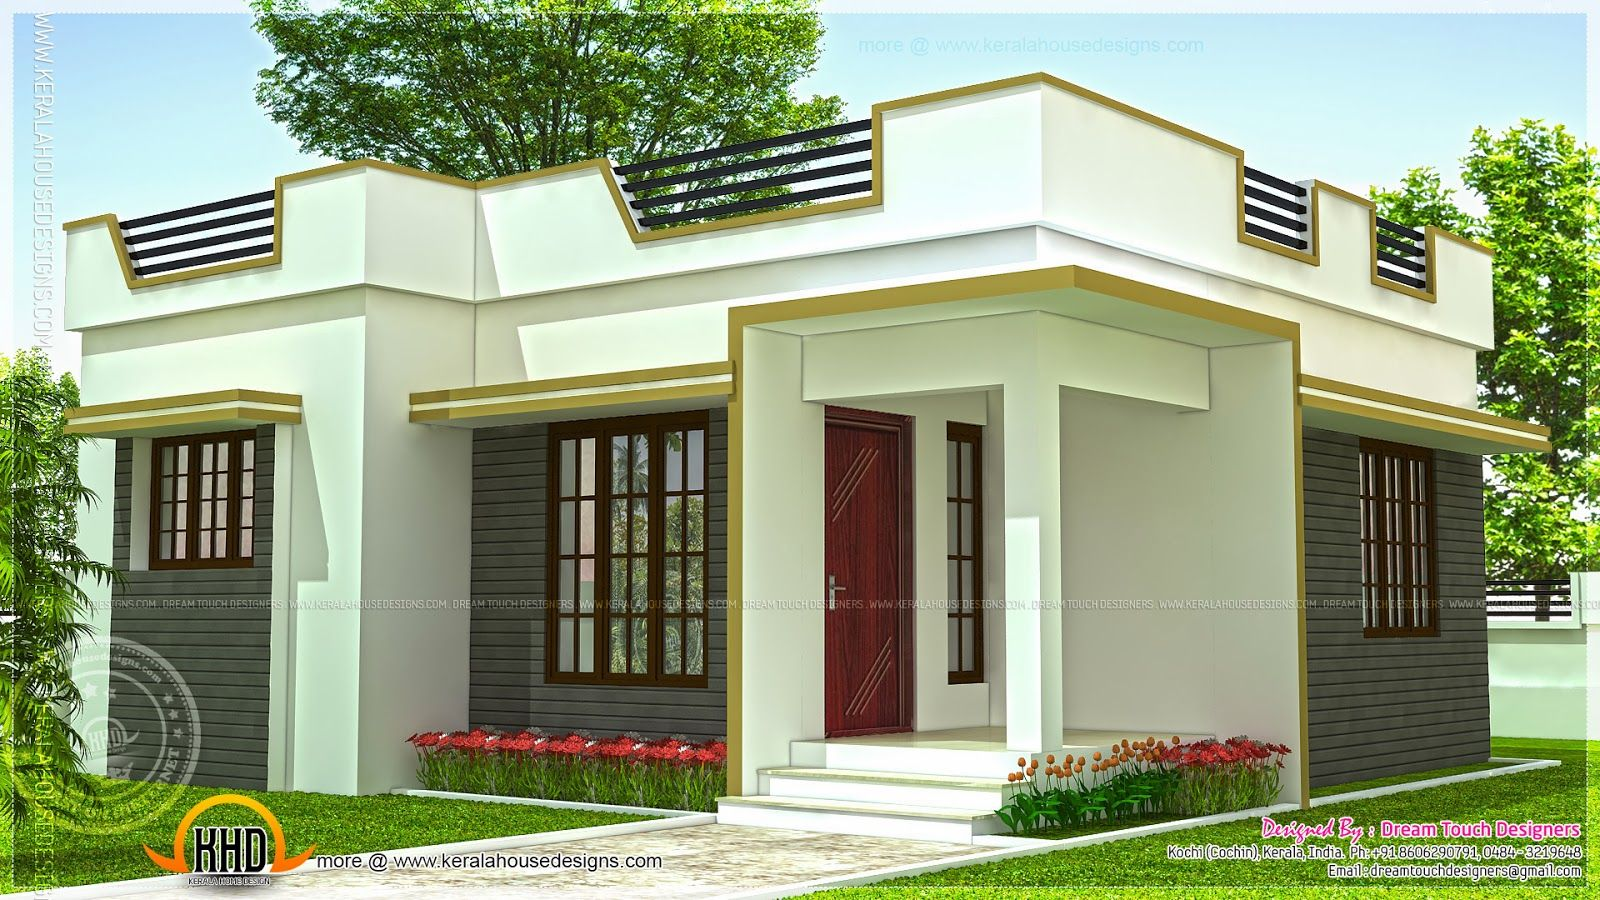 Lately 21 small house design kerala small house Best small house designs in india